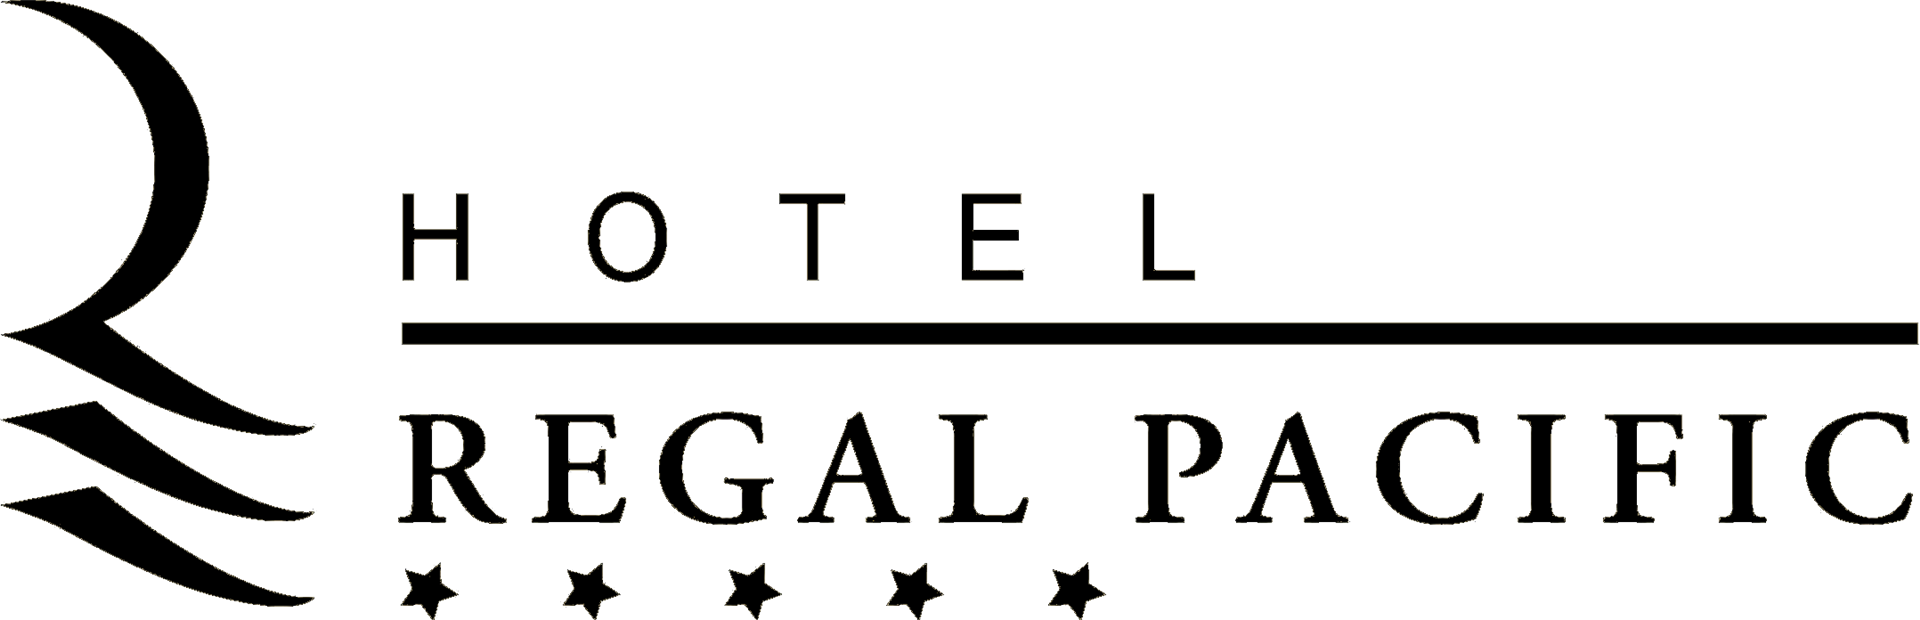 Hotel Regal Pacific Santiago